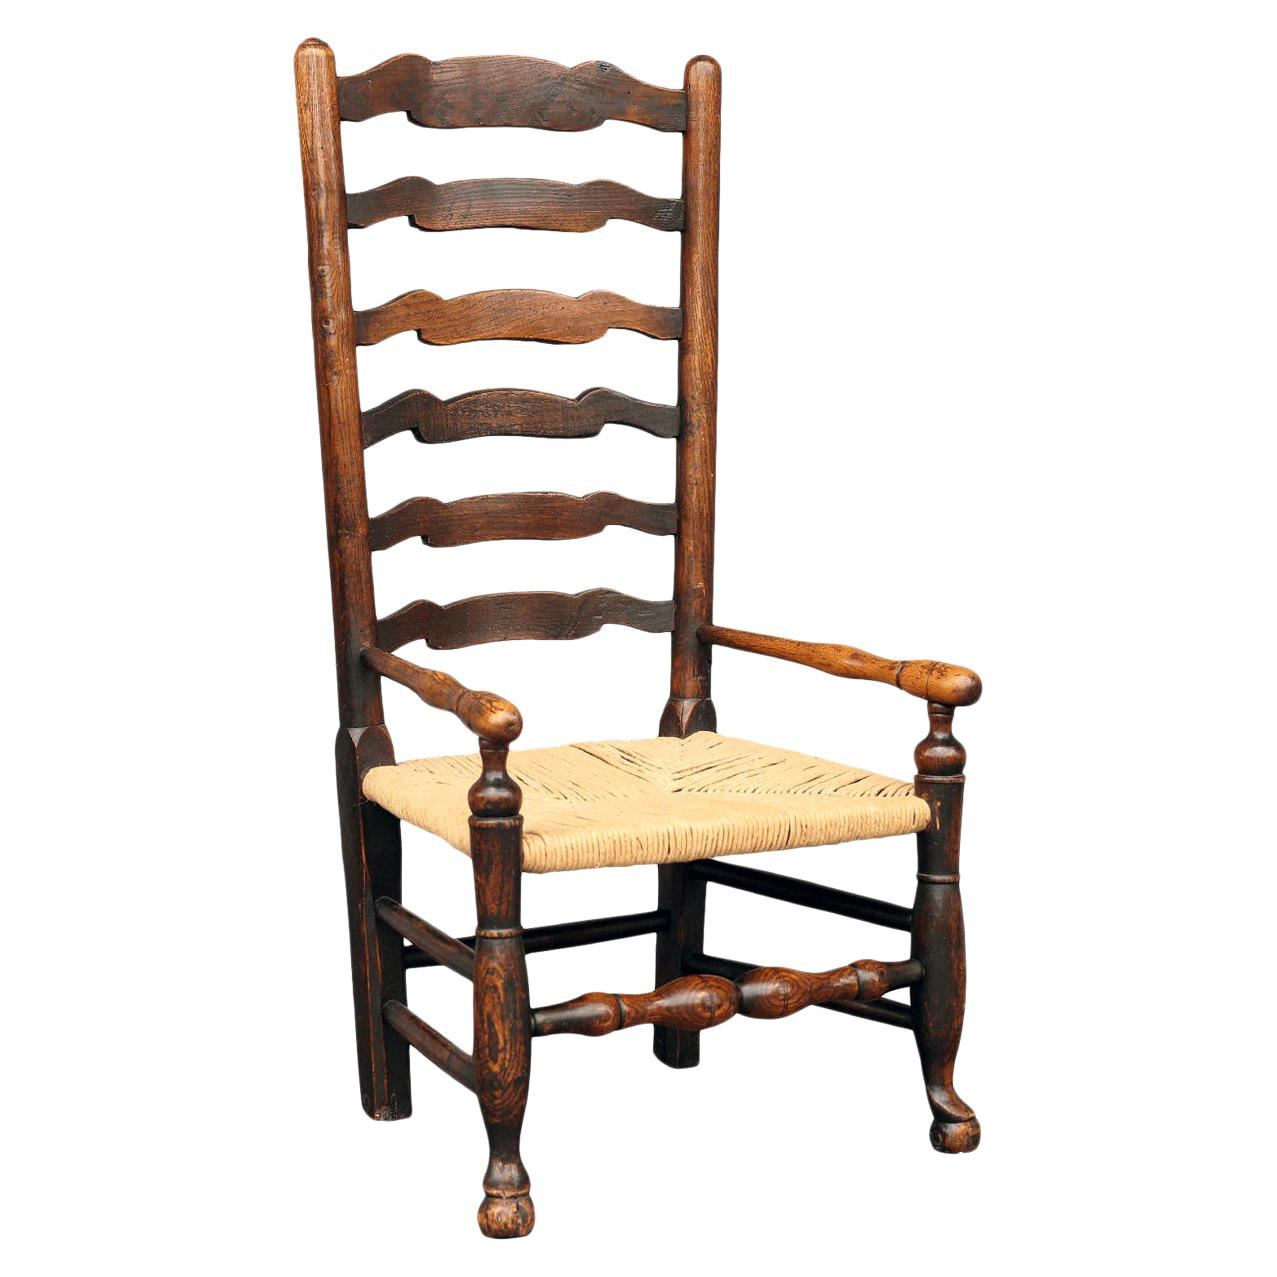 British Country Armchair in Ash